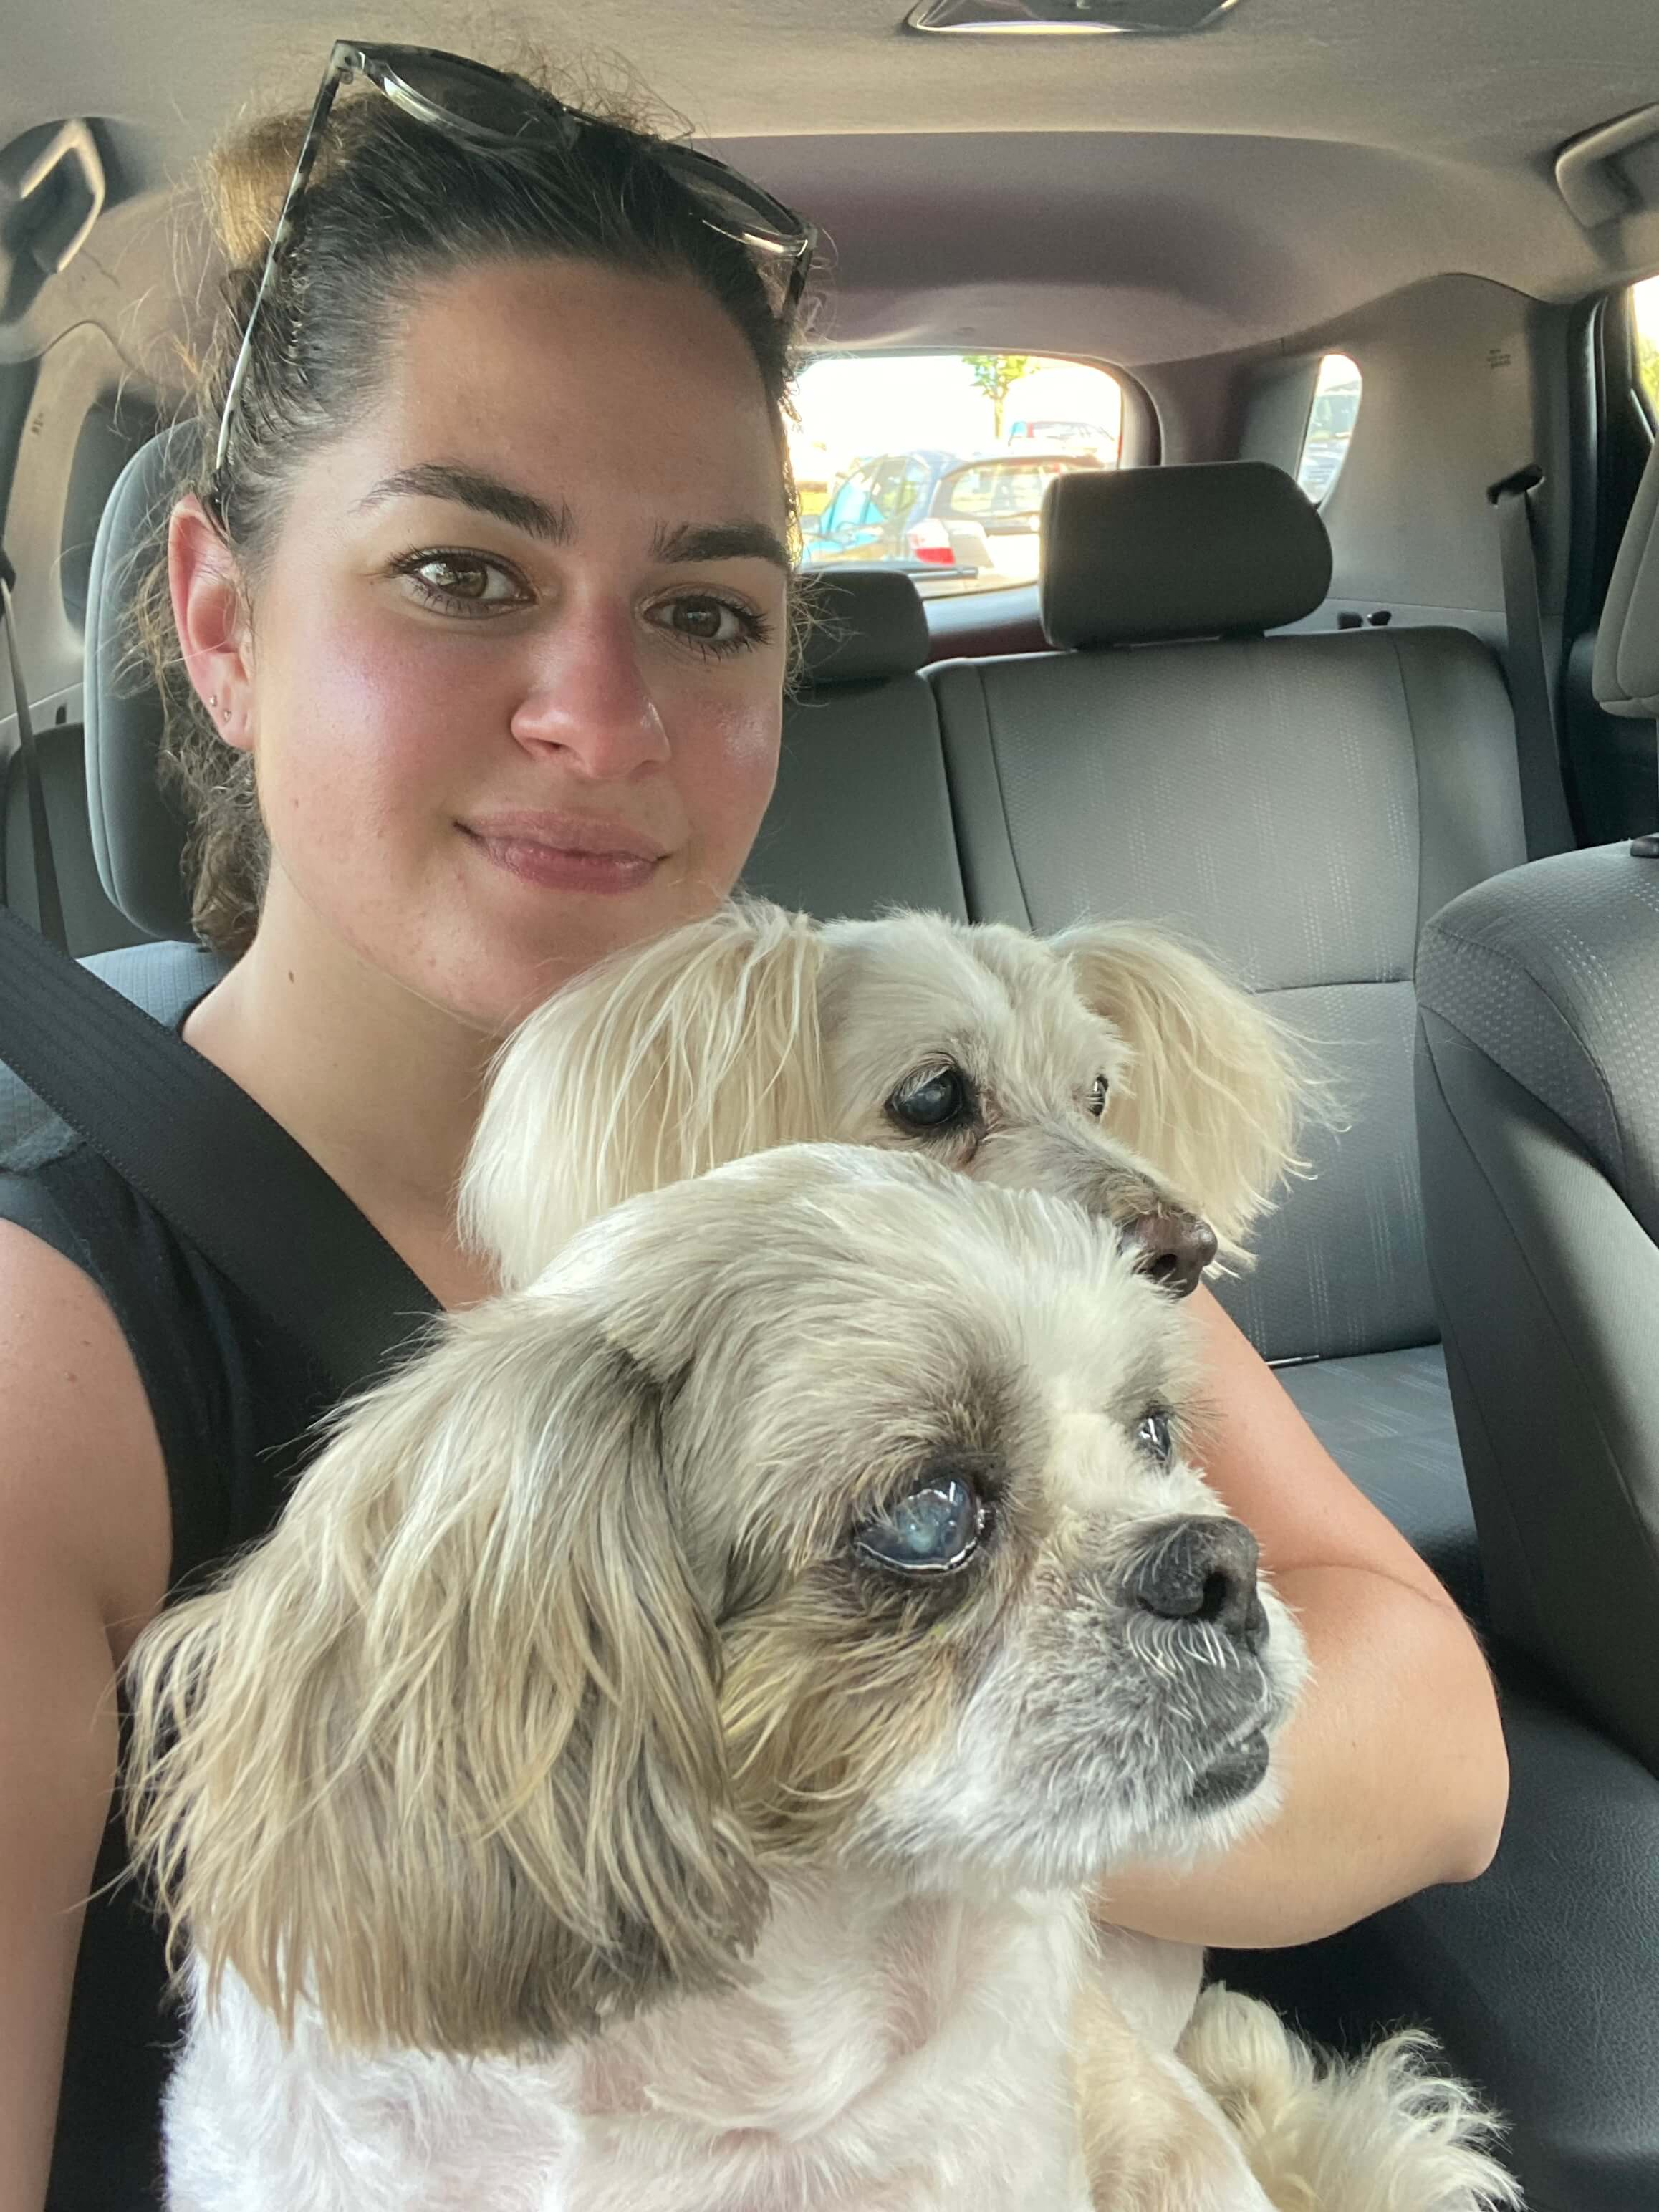 Jessica Leblond with her two dogs in a passenger seat in a car